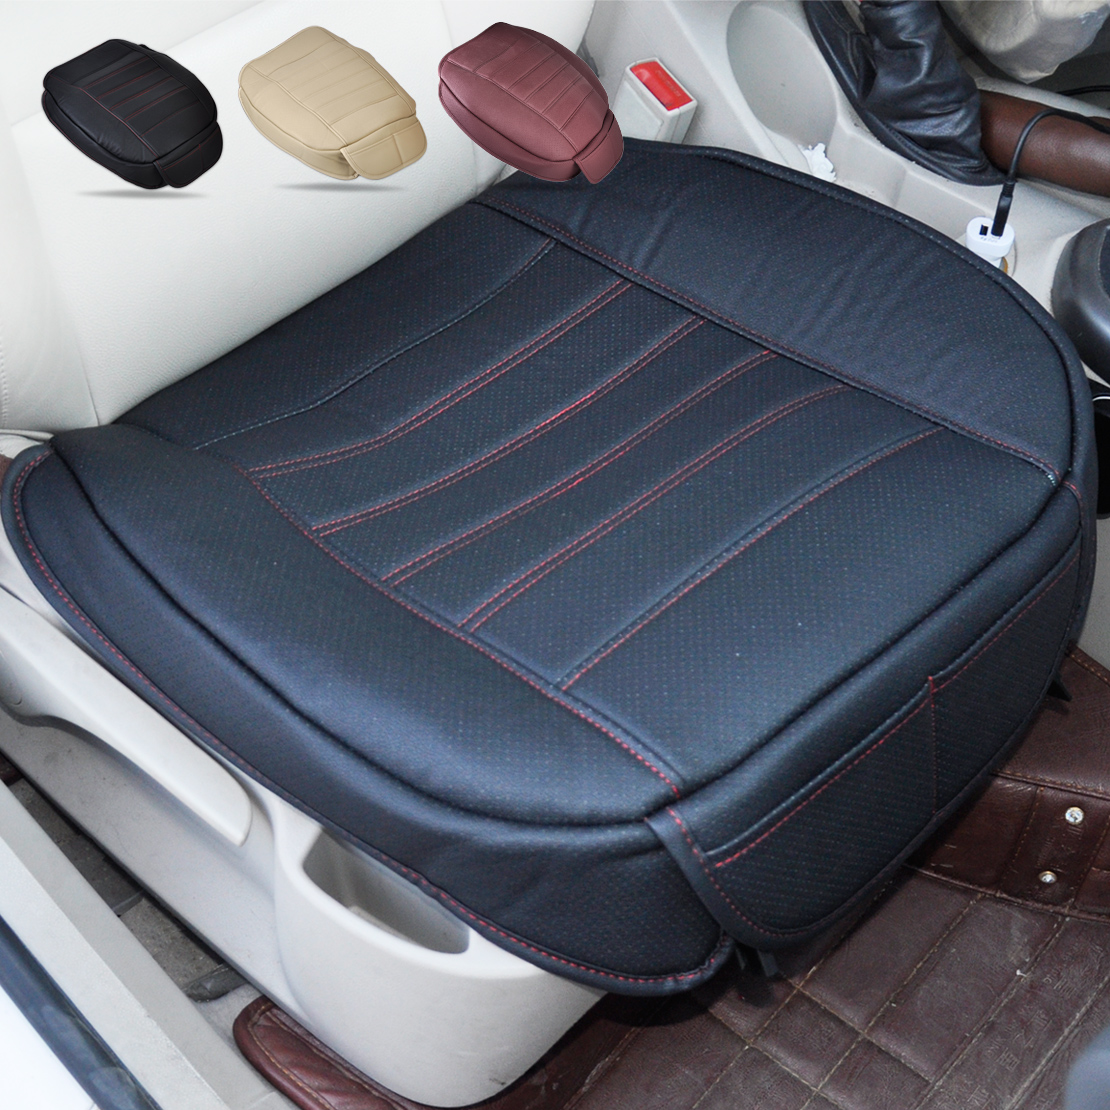 DWCX Universal PU leather Car Interior Front Seat Cover Seatpad For Ford Focus VW Golf Audi A6 BMW E46 E90 Nissan Honda Toyota carpass pu leather black color 11 pieces universal car seat cover for ford bmw toyoto nissan golf peugeot renault mazda volvo